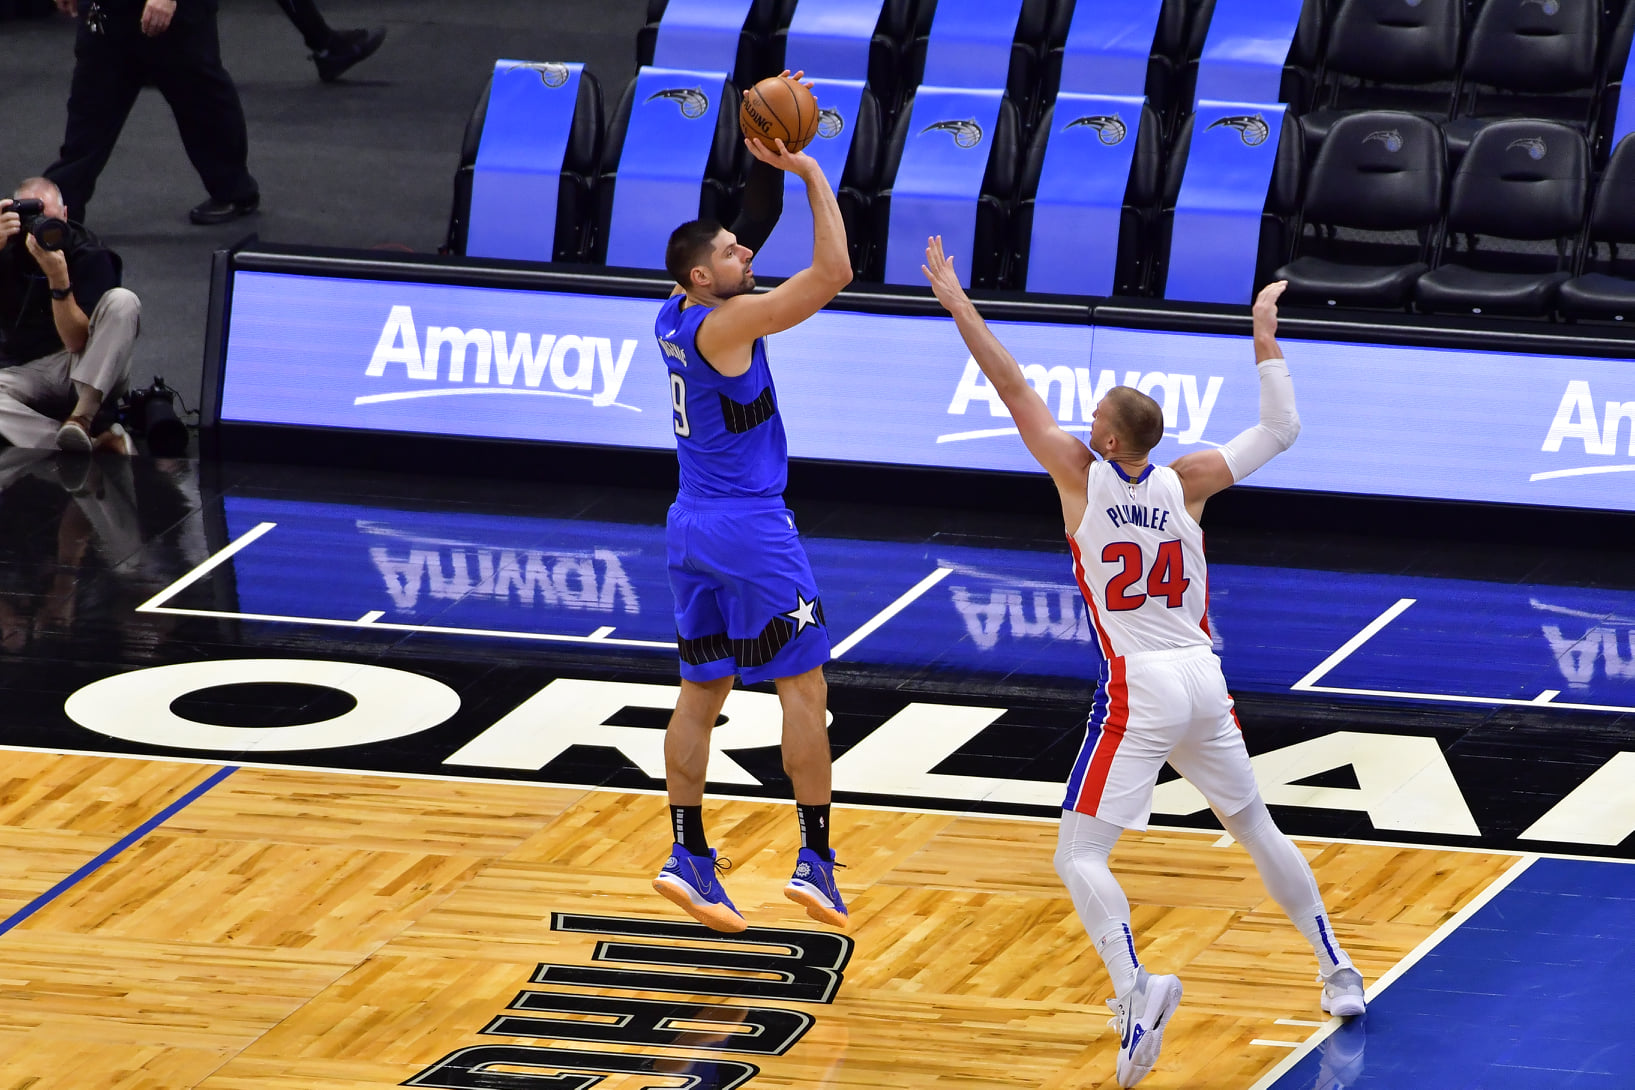 Orlando Magic center Nicola Vucevic (left) makes a shot during the Magic's match against the Detroit Pistons Sunday, February 21, 2021. Photo: Harry Castiblanco/Florida National News.